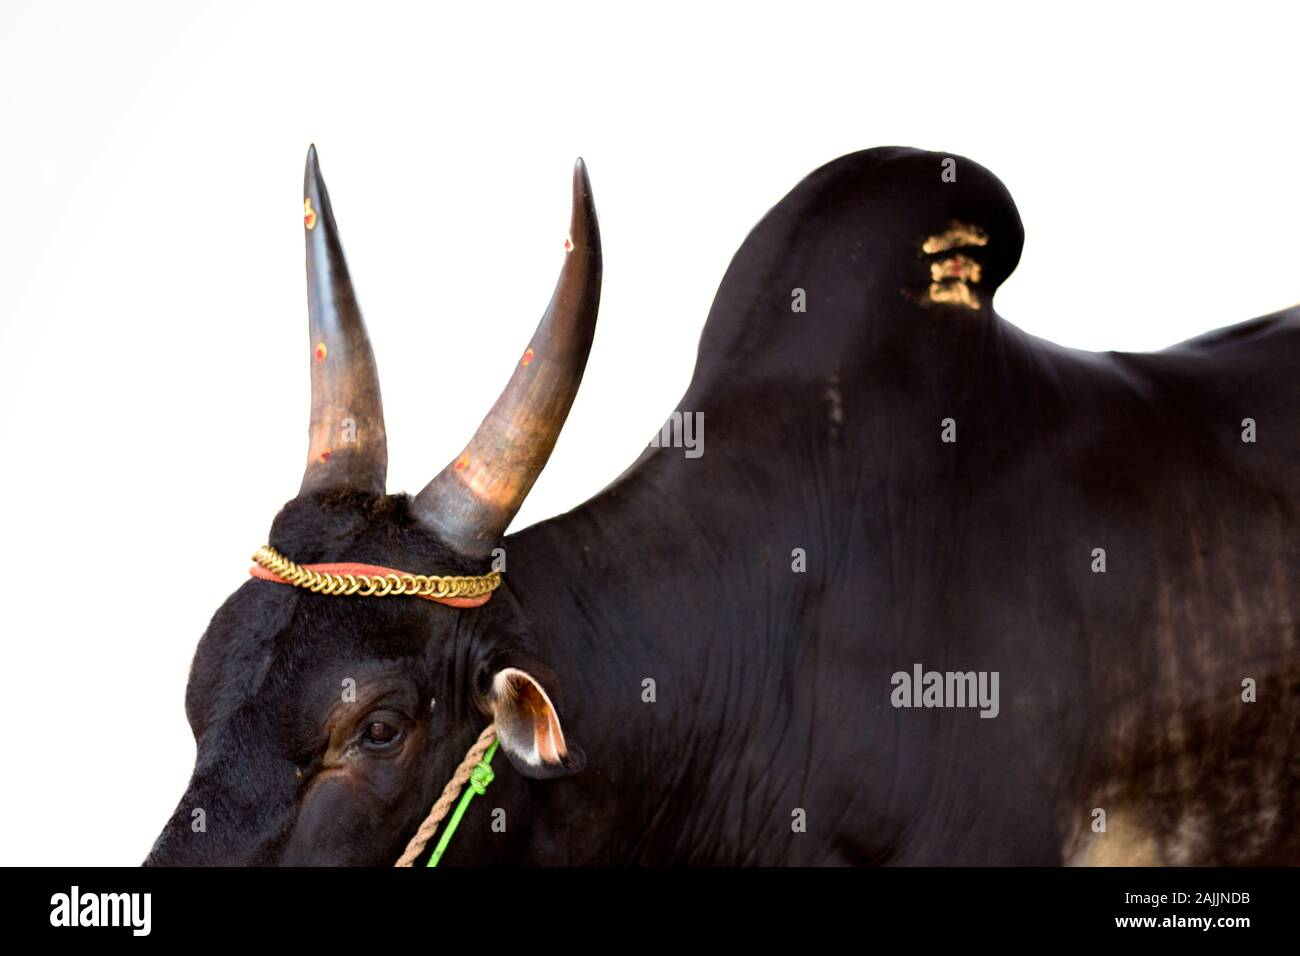 jallikattu bull high resolution stock photography and images alamy https www alamy com indian heritage kangayam cattle shot in a white background jallikattu kangayam bull in white background image338472775 html